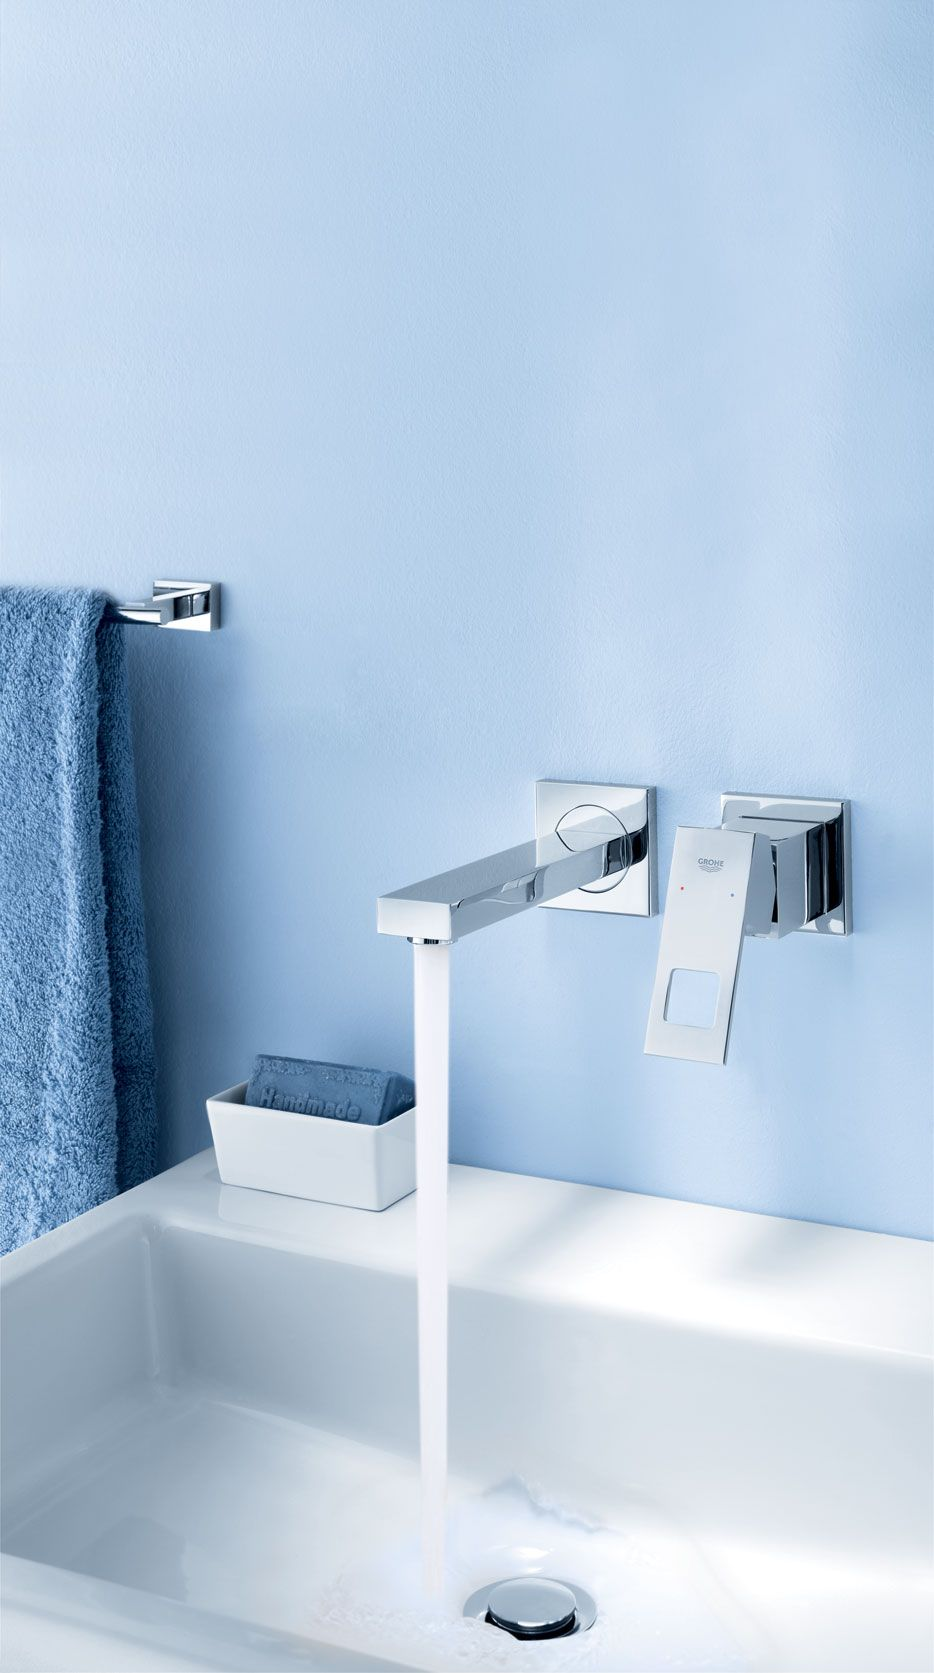 GROHE Eurocube 2-hole Wall Mounted Bathroom Faucet | Kitchen/Bath ...